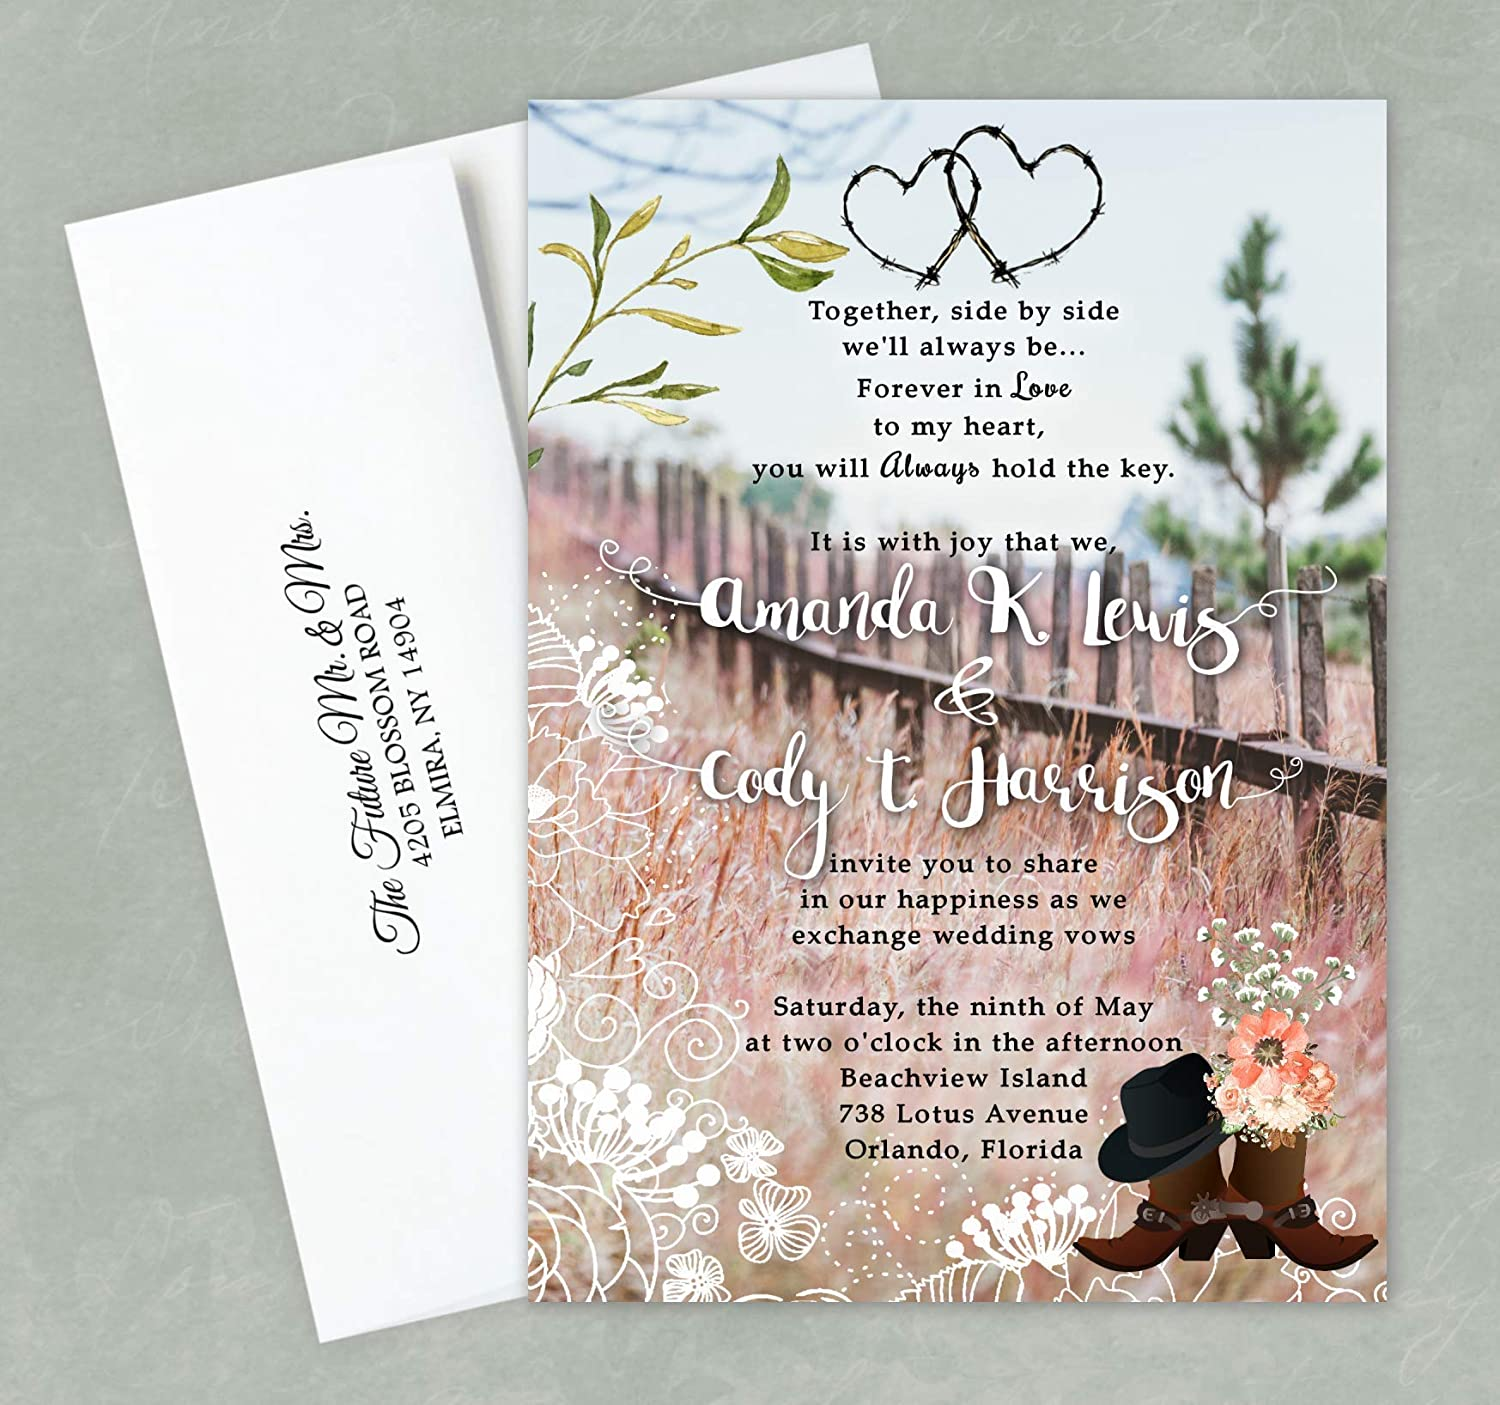 50 Western Silhouette Invitations for Weddings or any Occasion Customized for You